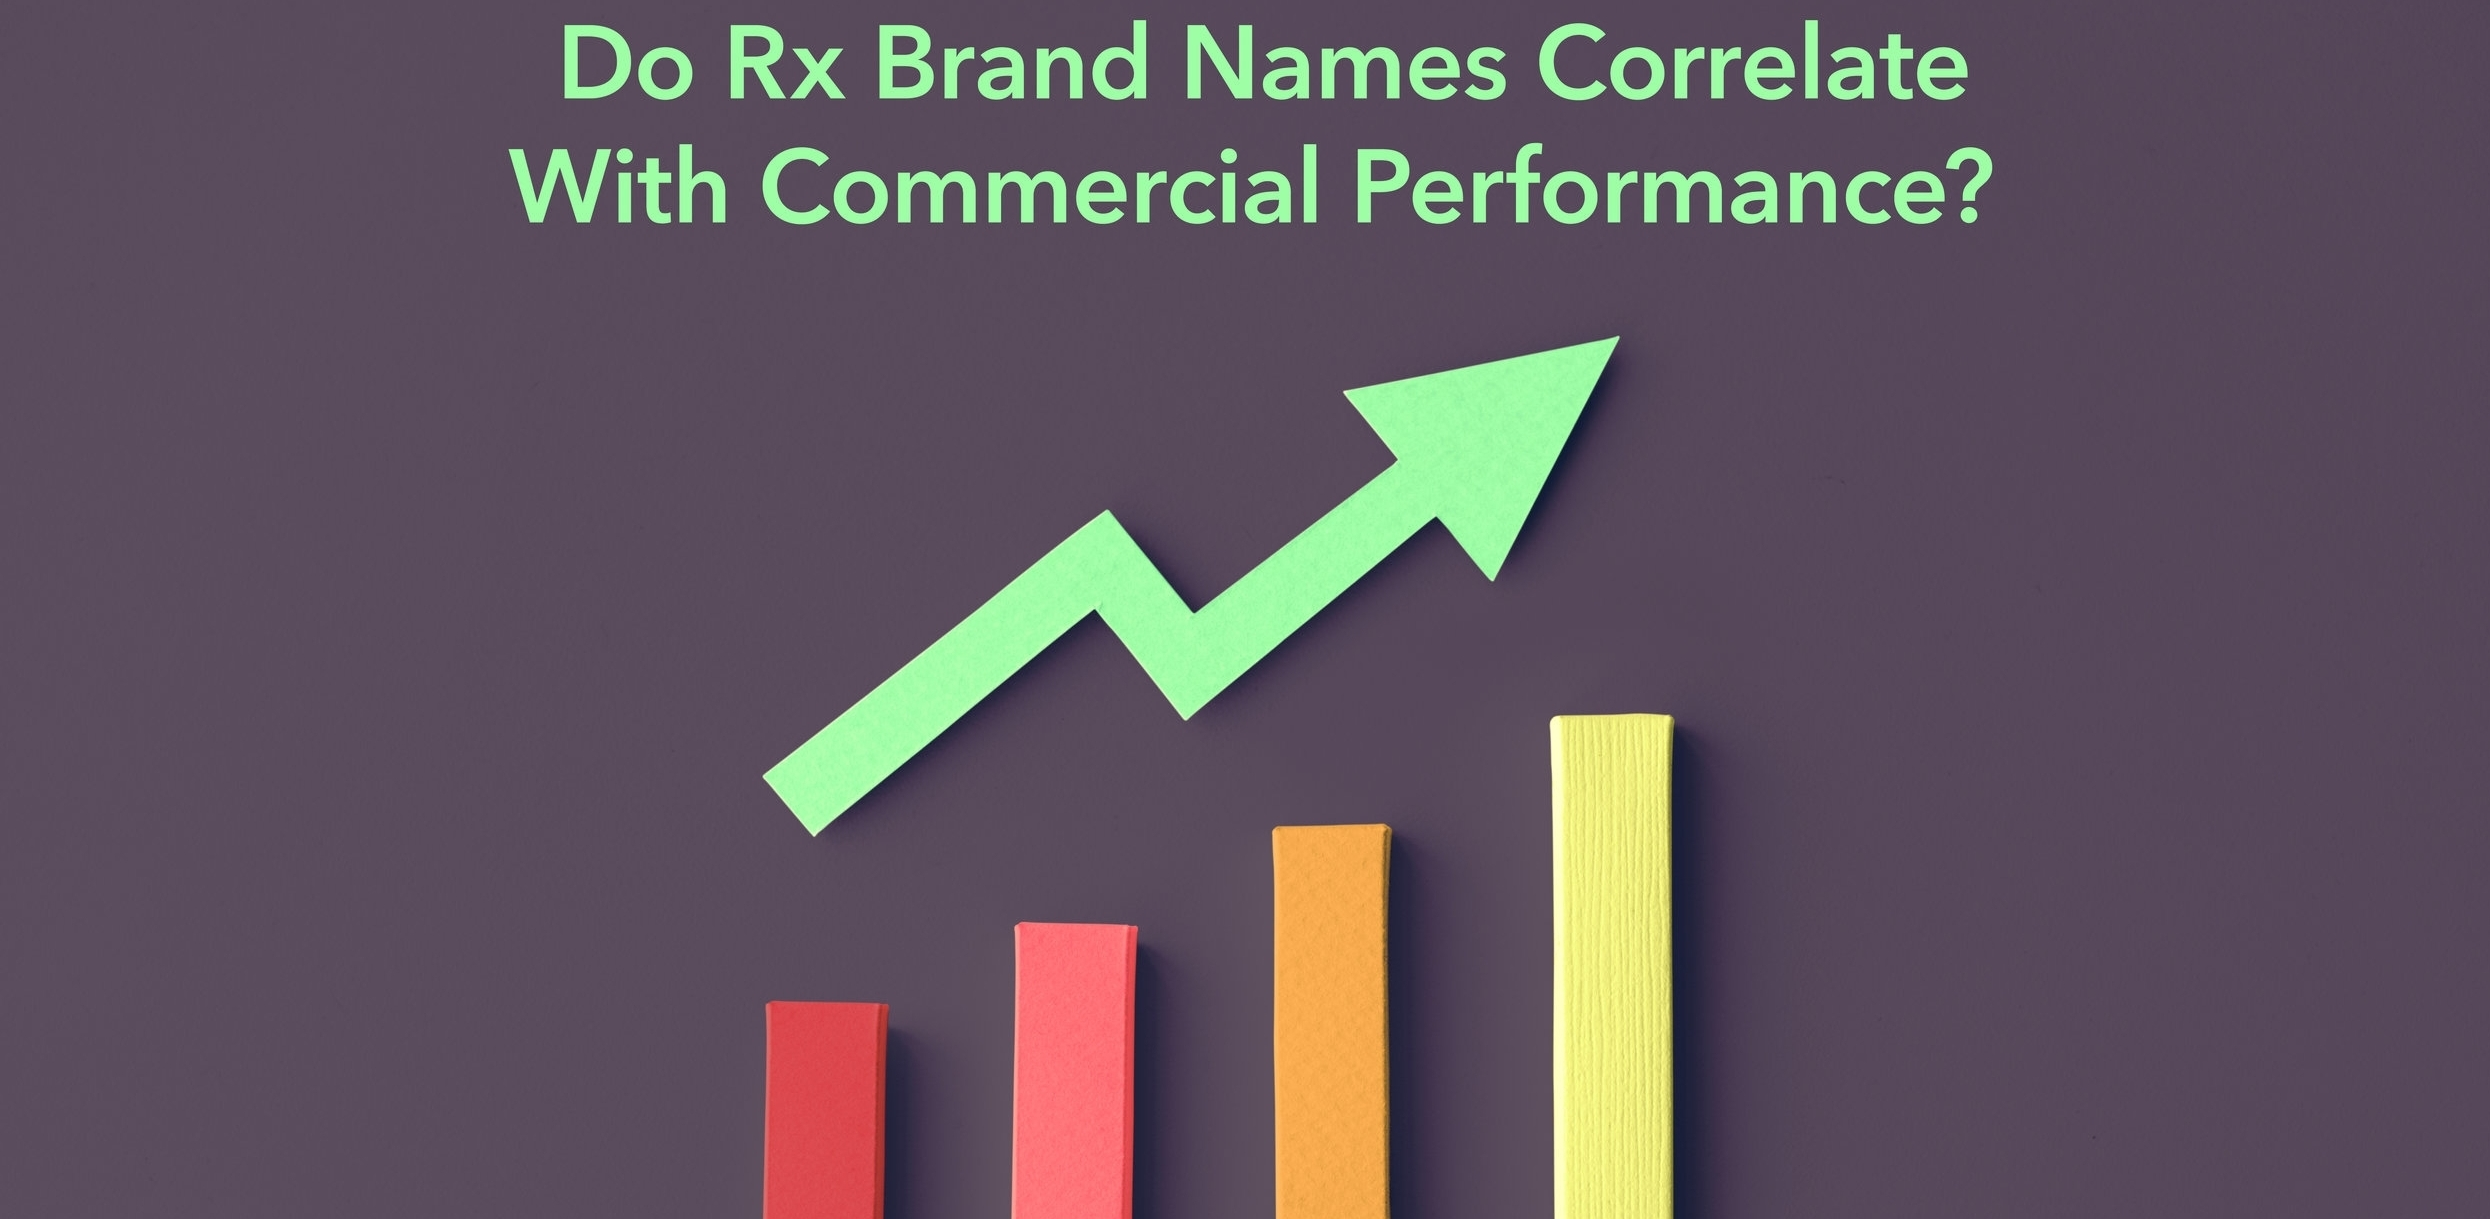 Do Rx Brand Names Correlate With Commercial Performance